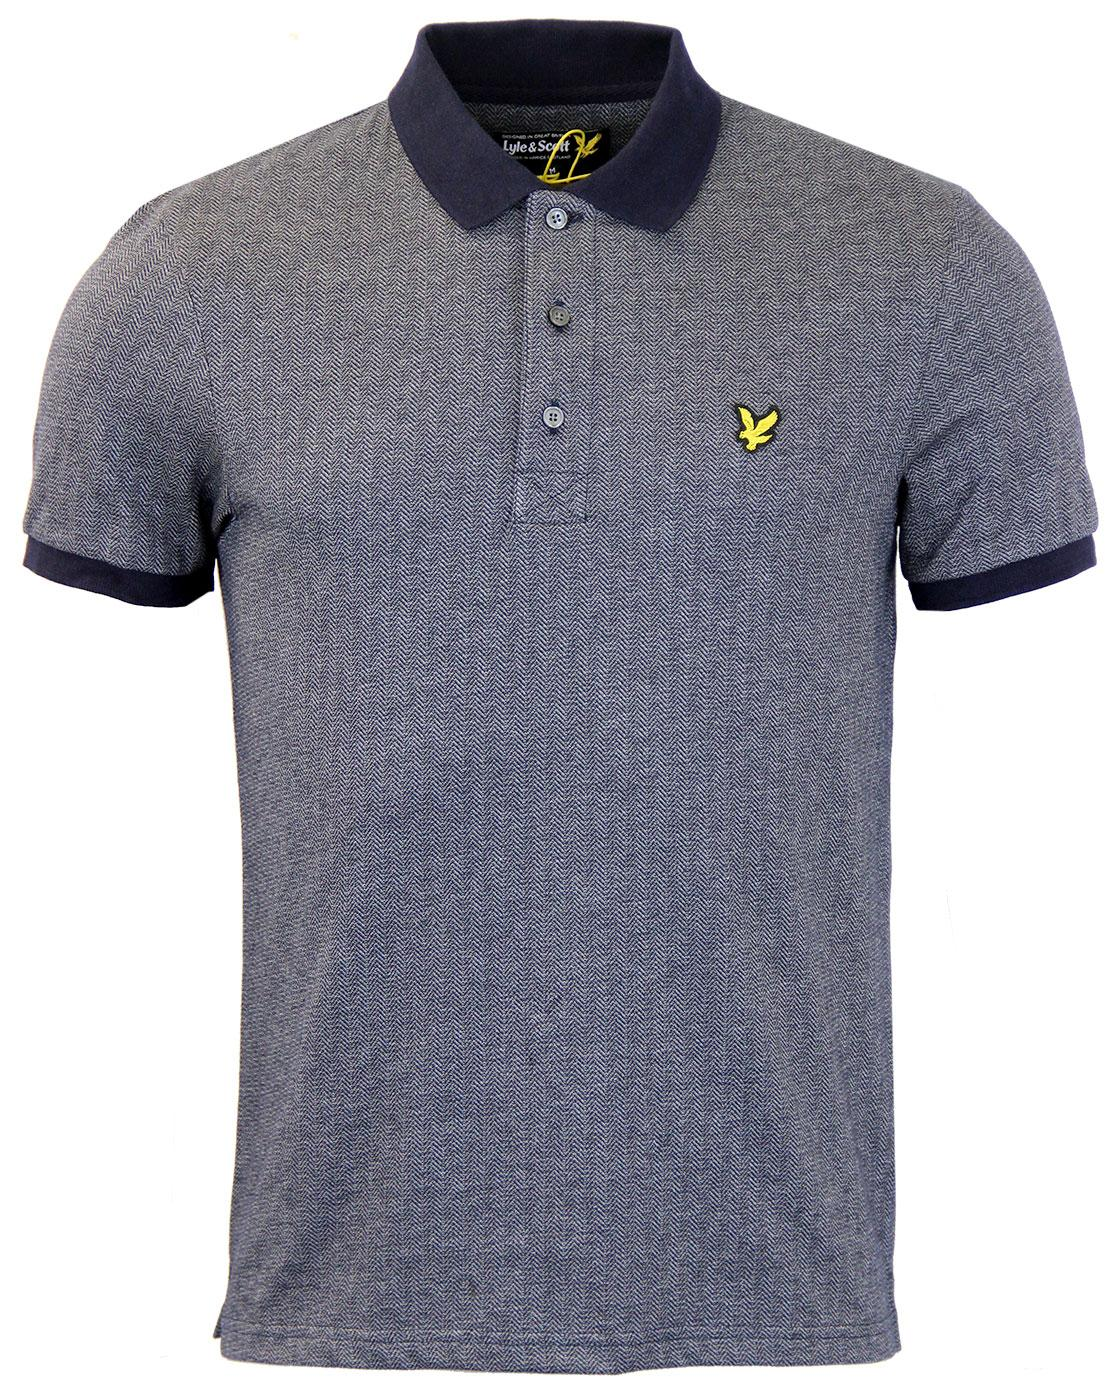 Herringbone LYLE AND SCOTT Retro Mod Polo